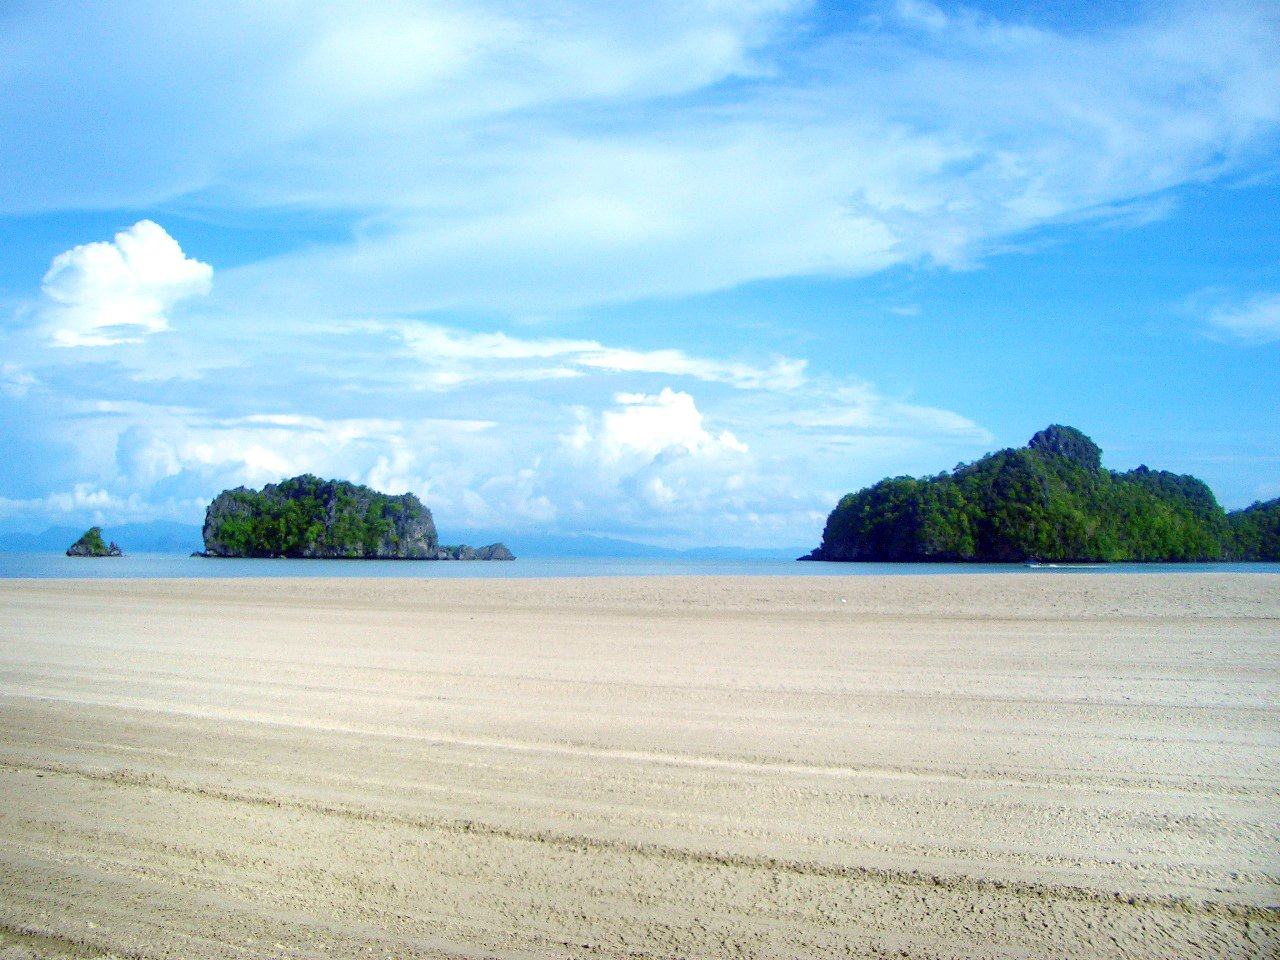 Langkawi The Idyllic Island: Free Langkawi Island 4 Stock Photo